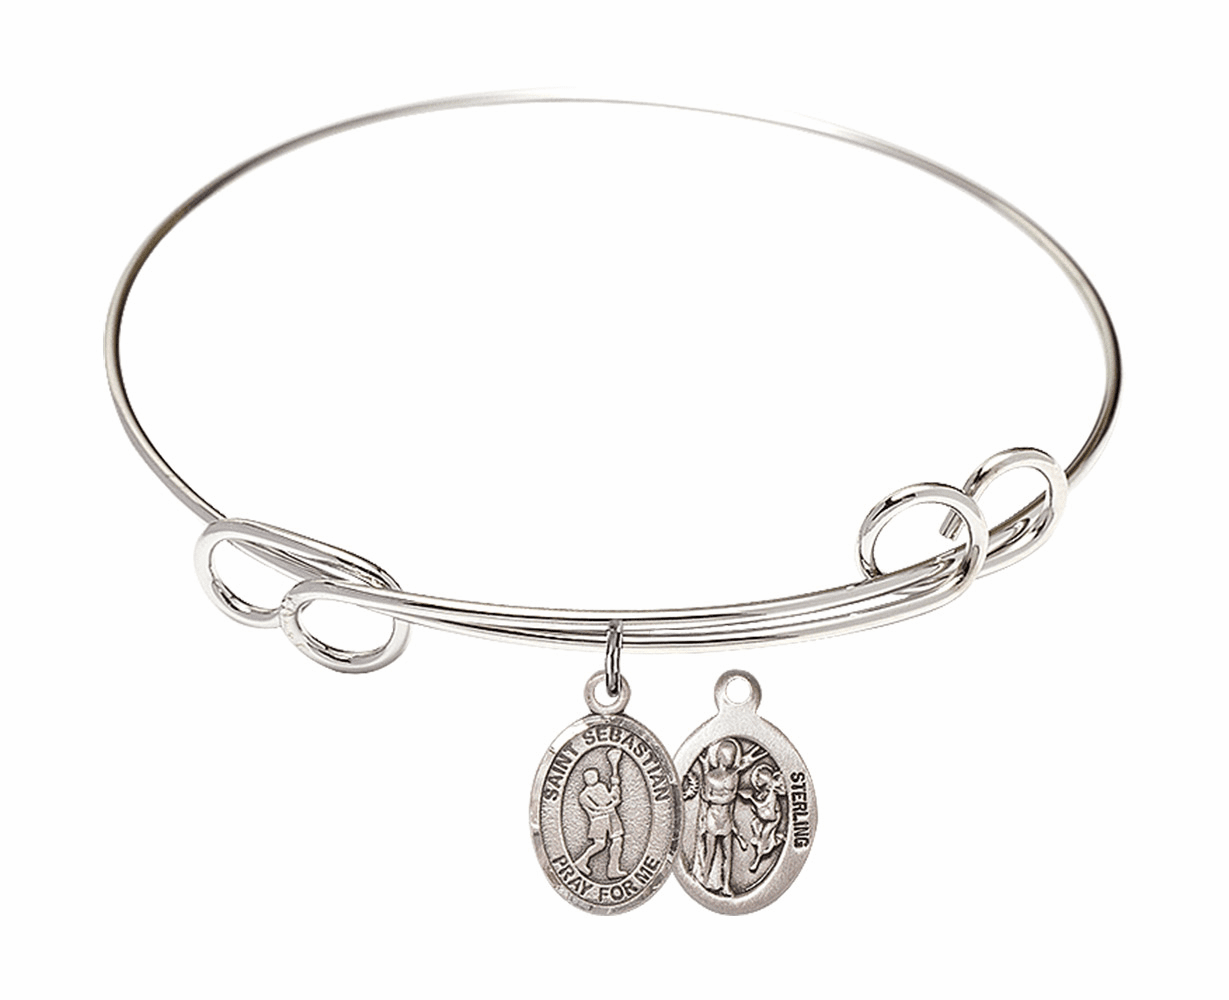 Round Loop St Sebastian Lacrosse Bangle Charm Bracelet by Bliss